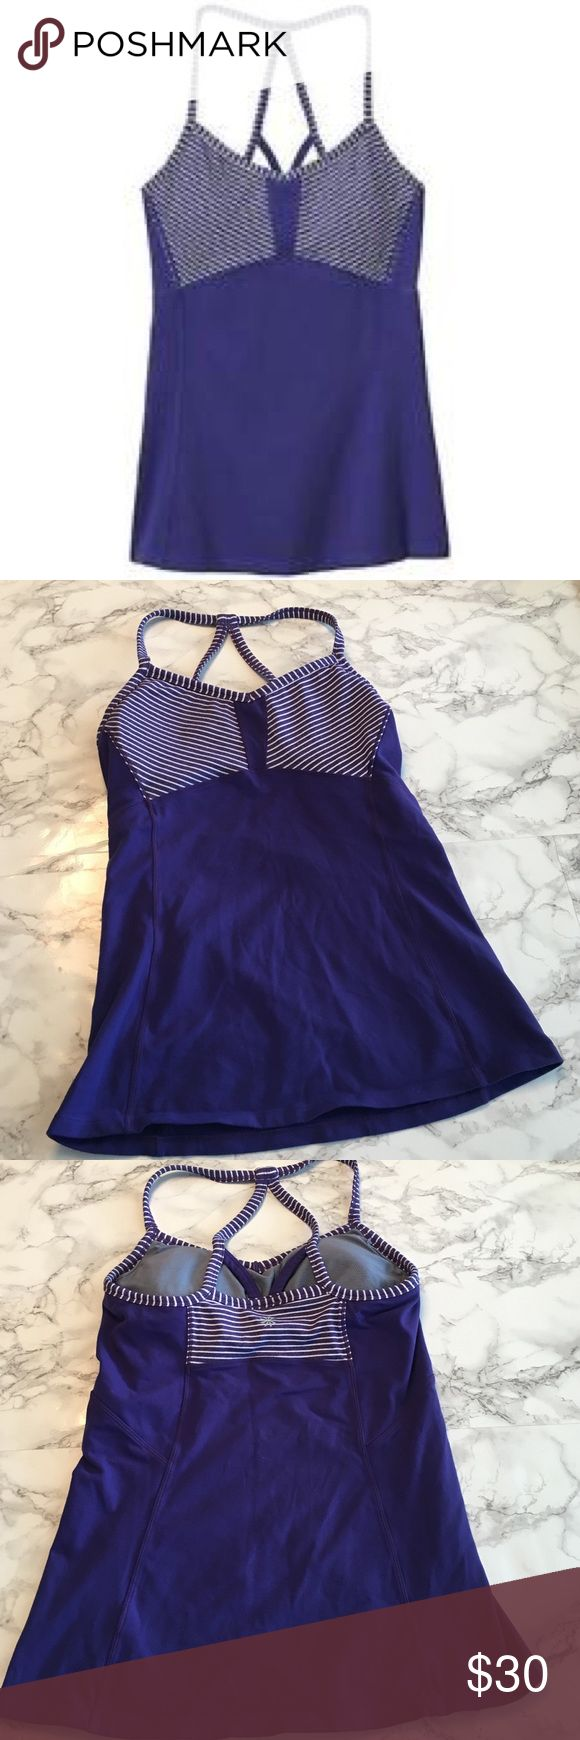 """Athleta Striped workout top in purple Athleta Striped Workout top in Purple. Size small. Purple with white stripes. Spaghetti. Strap, racerback workout top. Has padding. In gently worn, preloved condition with no imperfections. I DO NOT MODEL LISTINGS, measurements approx. 18.5"""" length, 12.5"""" across the bust. Love the item but not the price? Please make offers using the offer button. 🚫POSH ONLY, NO TRADES OR COMMENT OFFERS🚫 Athleta Tops"""